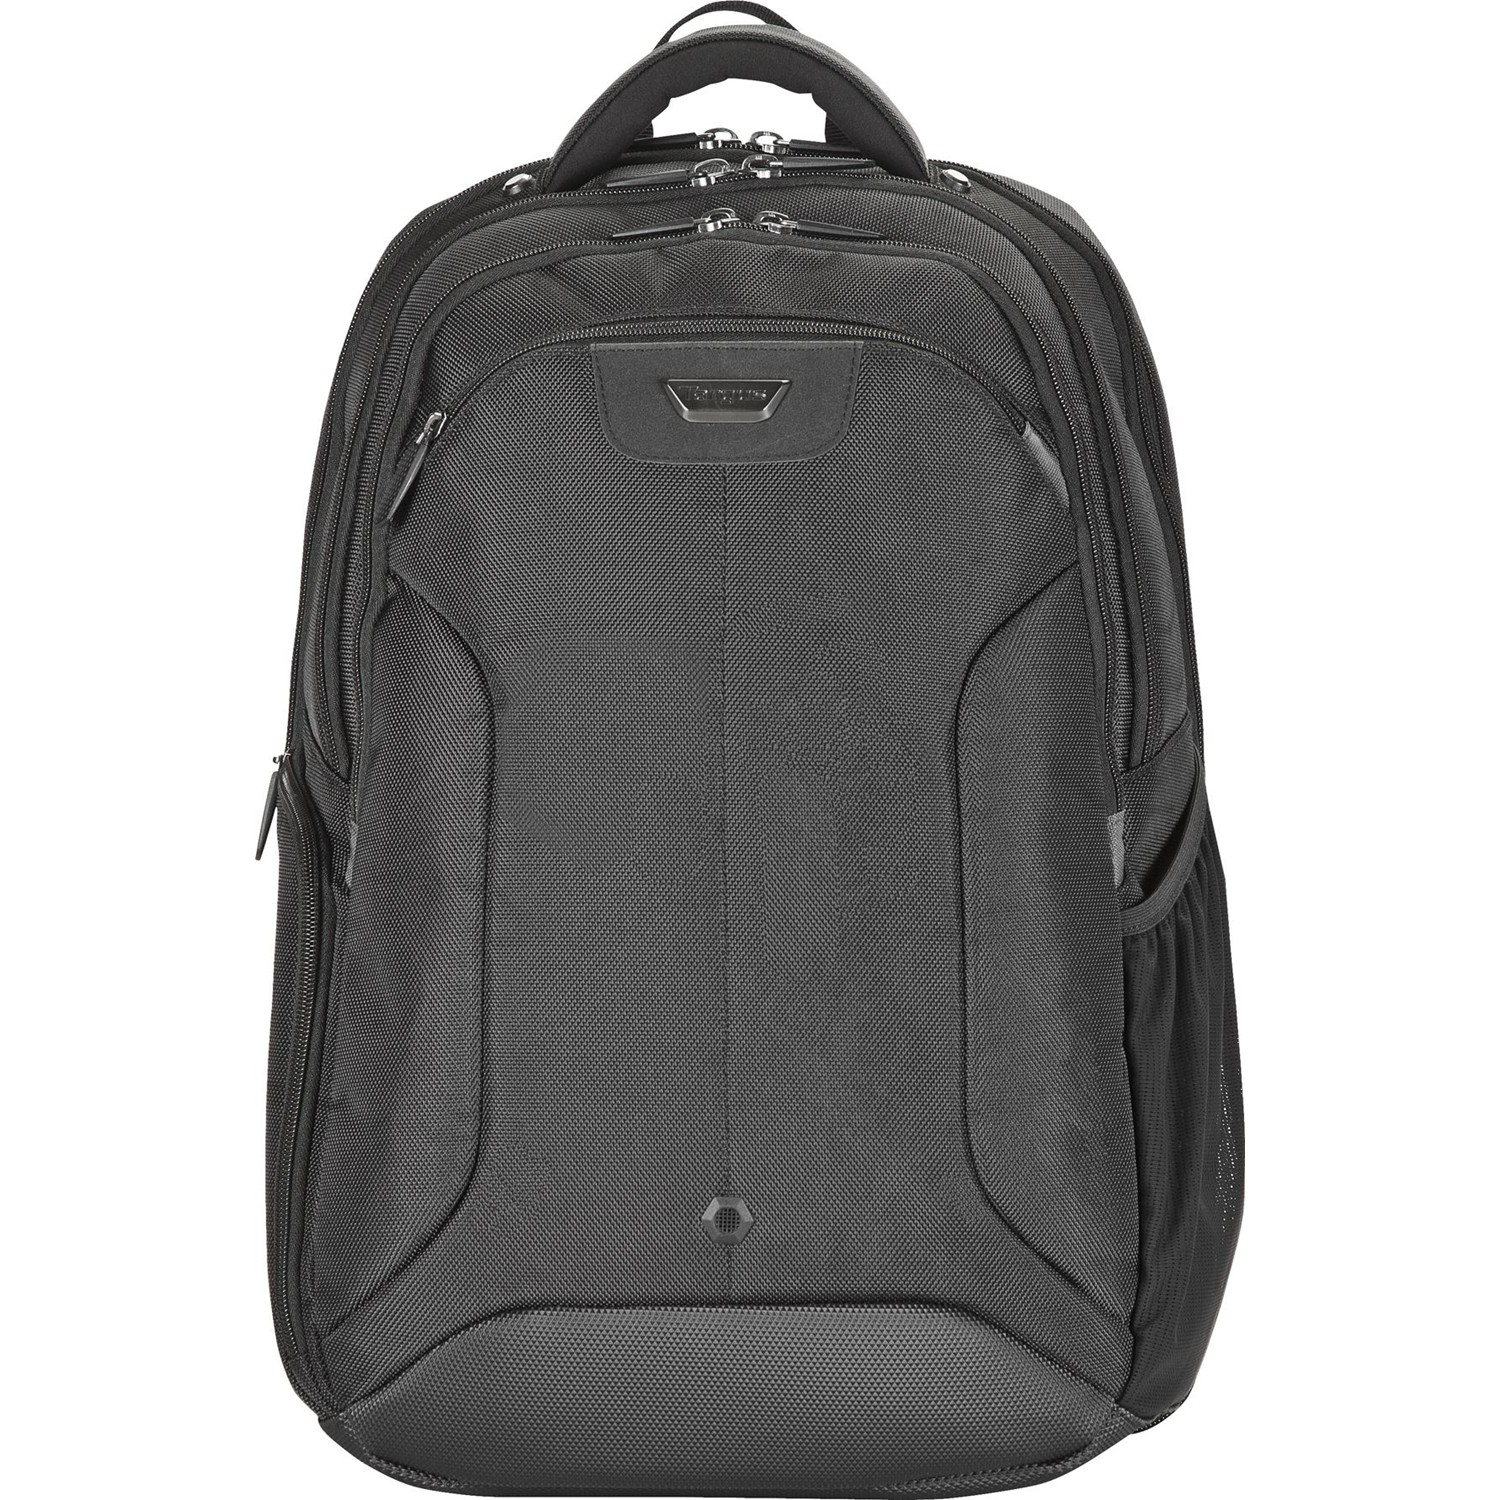 Targus 16 Inch Corporate Traveler Checkpoint-Friendly Backpack  (TAR-CUCT02B) - Online Only 8566266319012